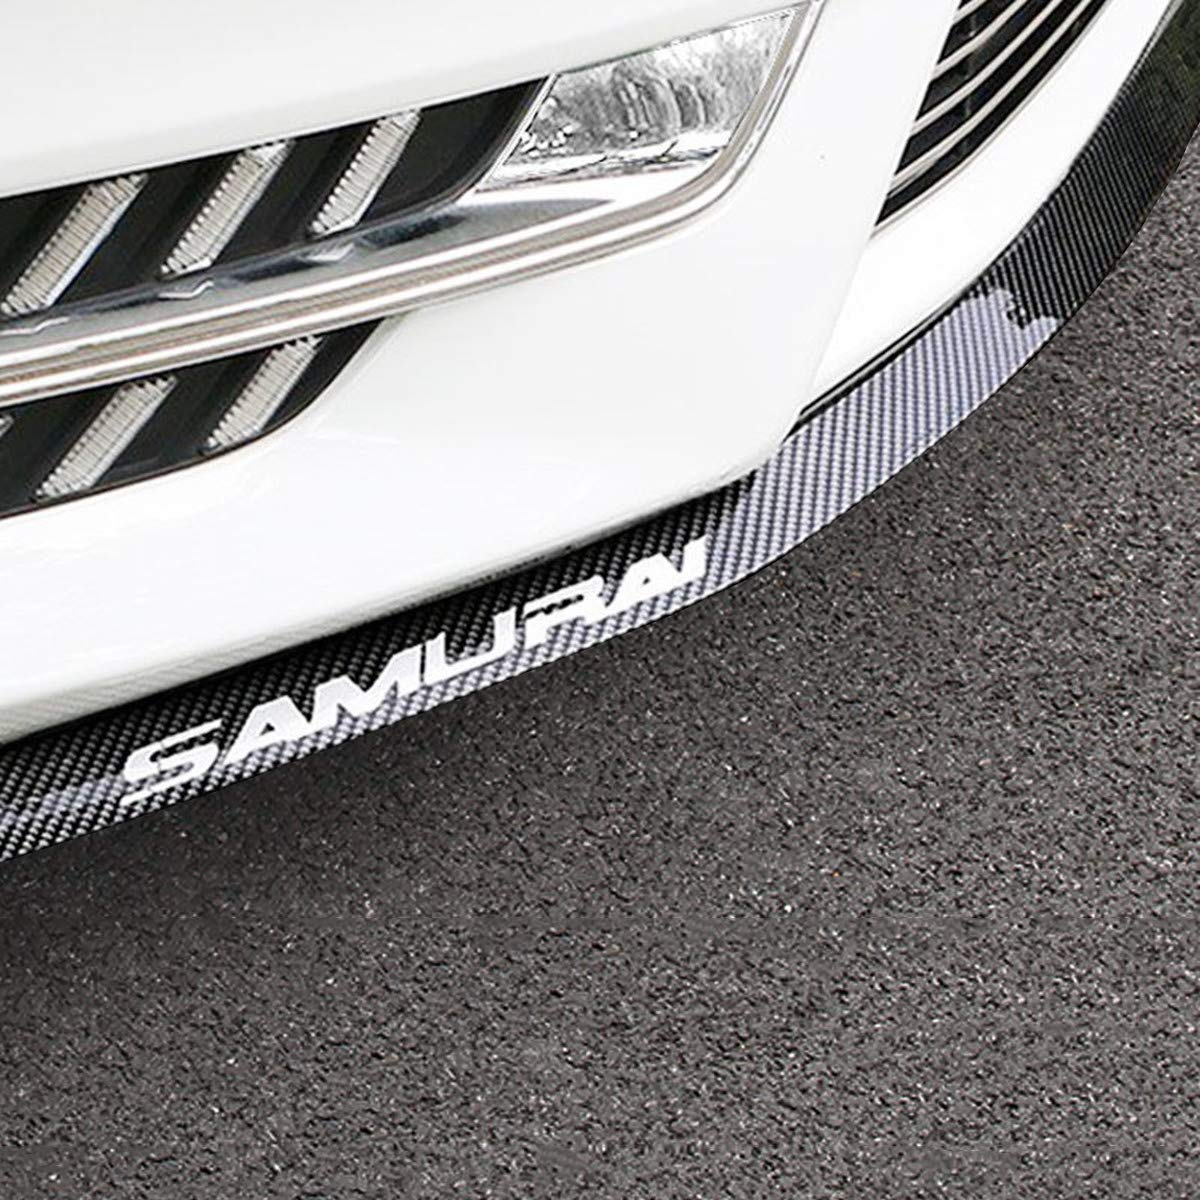 2.5m, Carbon Fiber Black Front Lip Spoiler for Cars Trucks SUV Front Lip /& Side Skirt Protector Bumper Protector Front Bumper Lip to Protect Cars from Collision